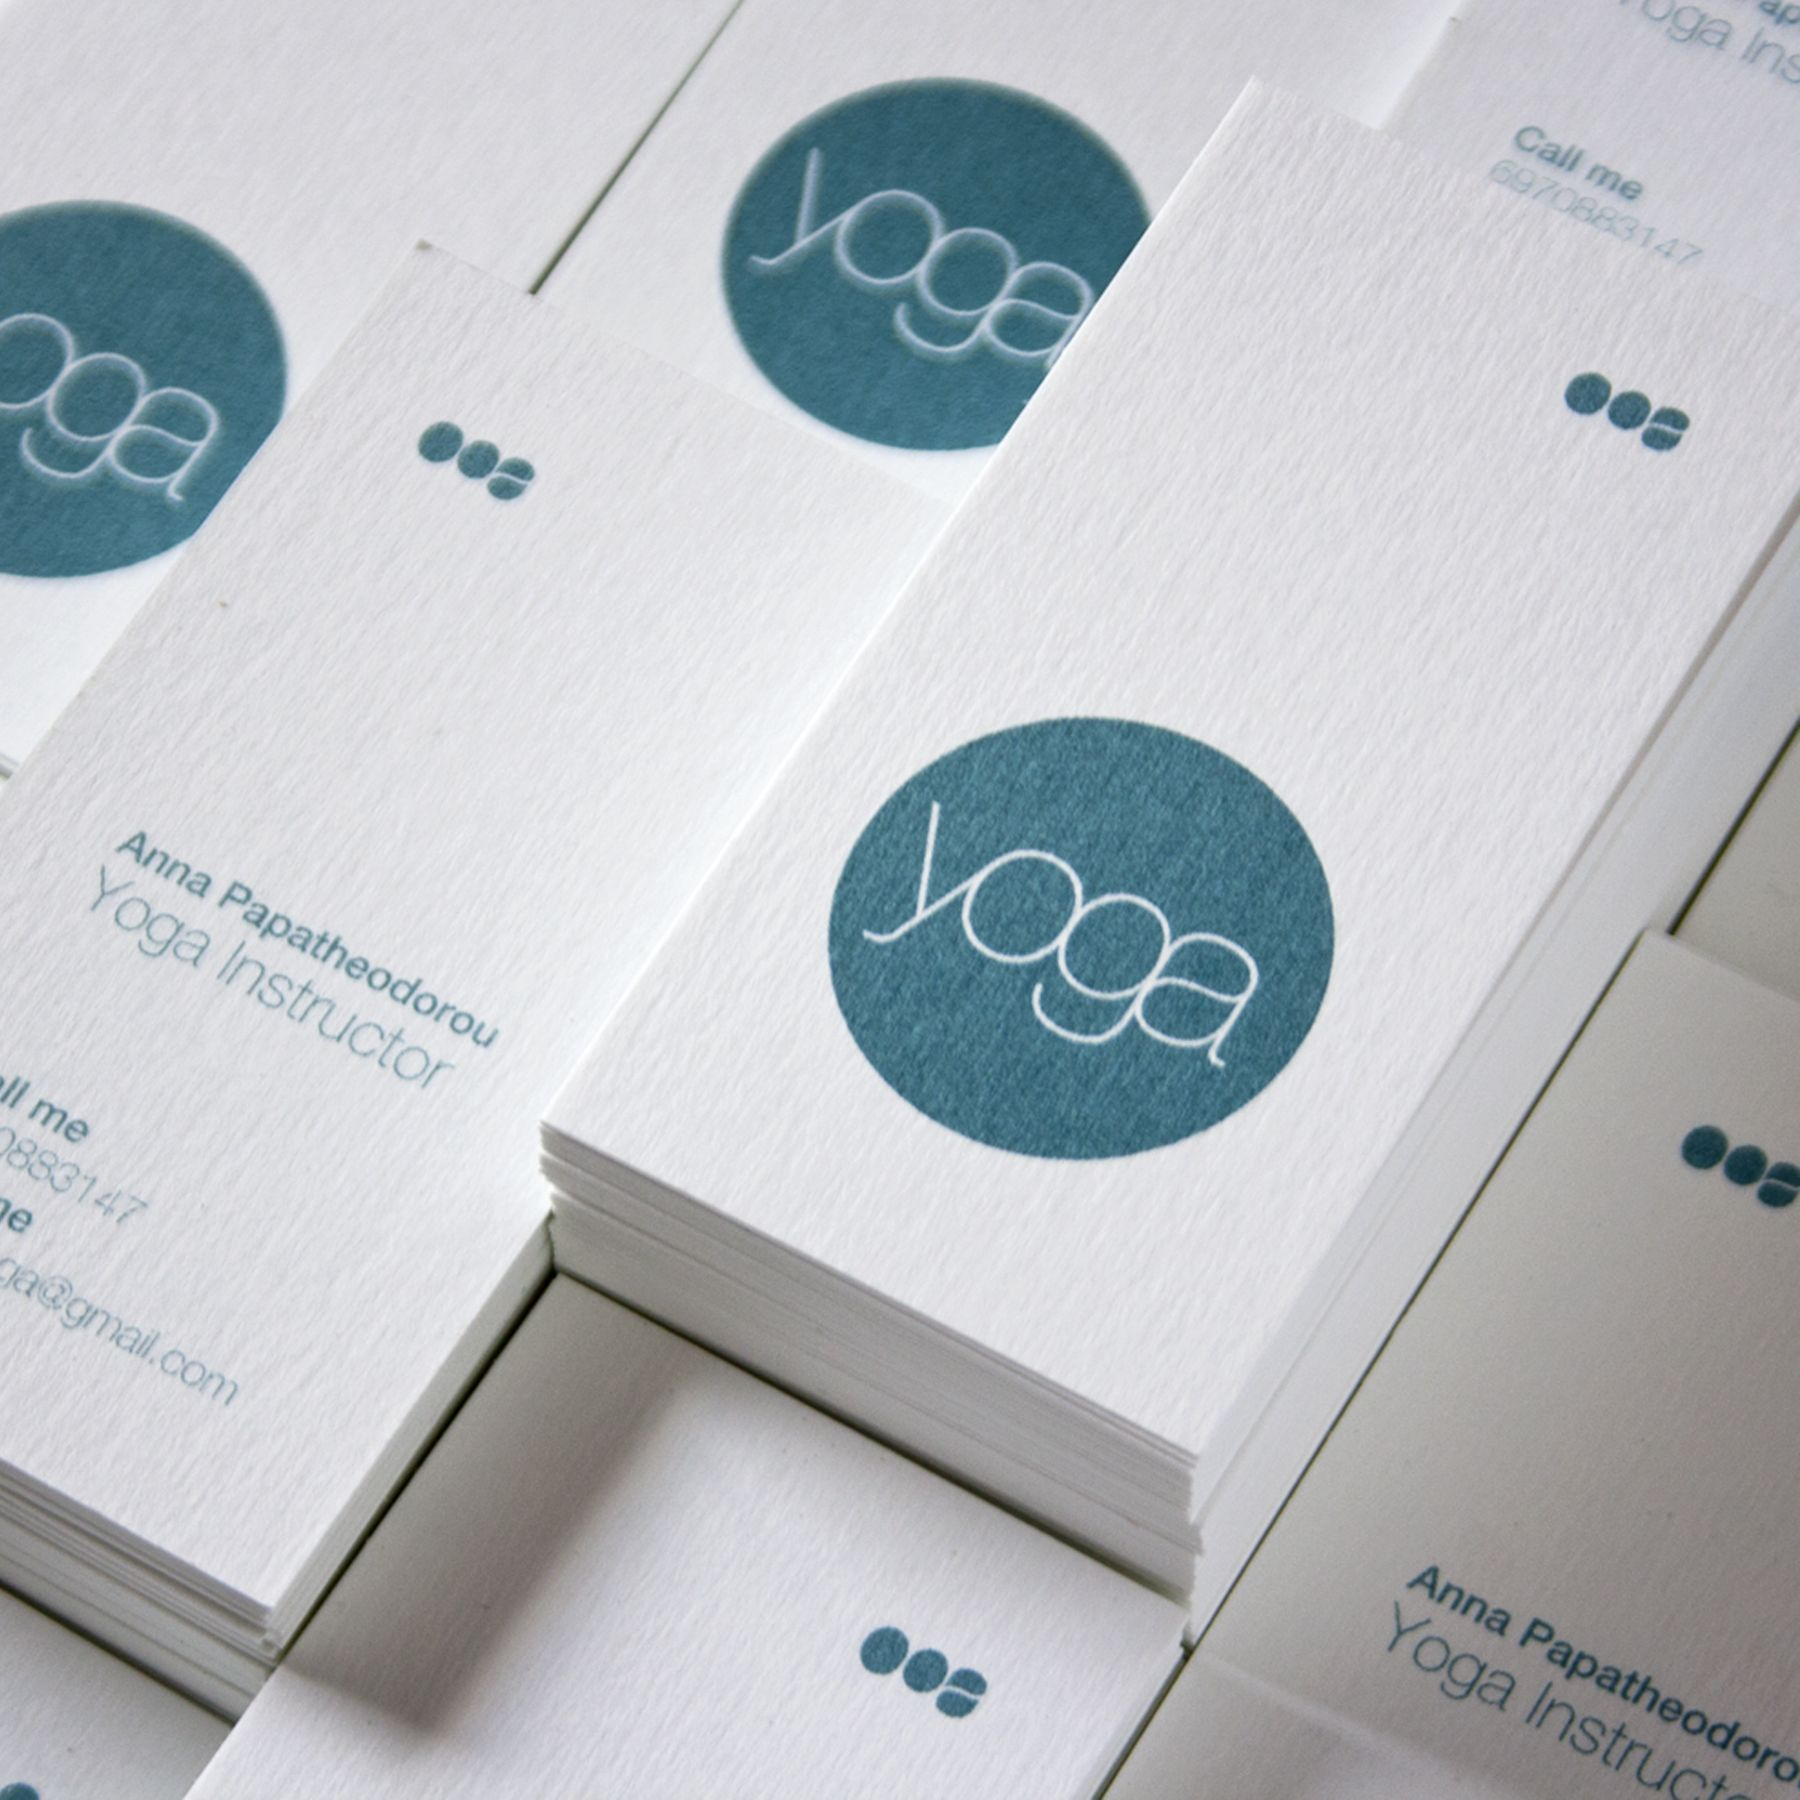 Yoga business card – Panos Nikolaou | Creative / Innovative Business ...